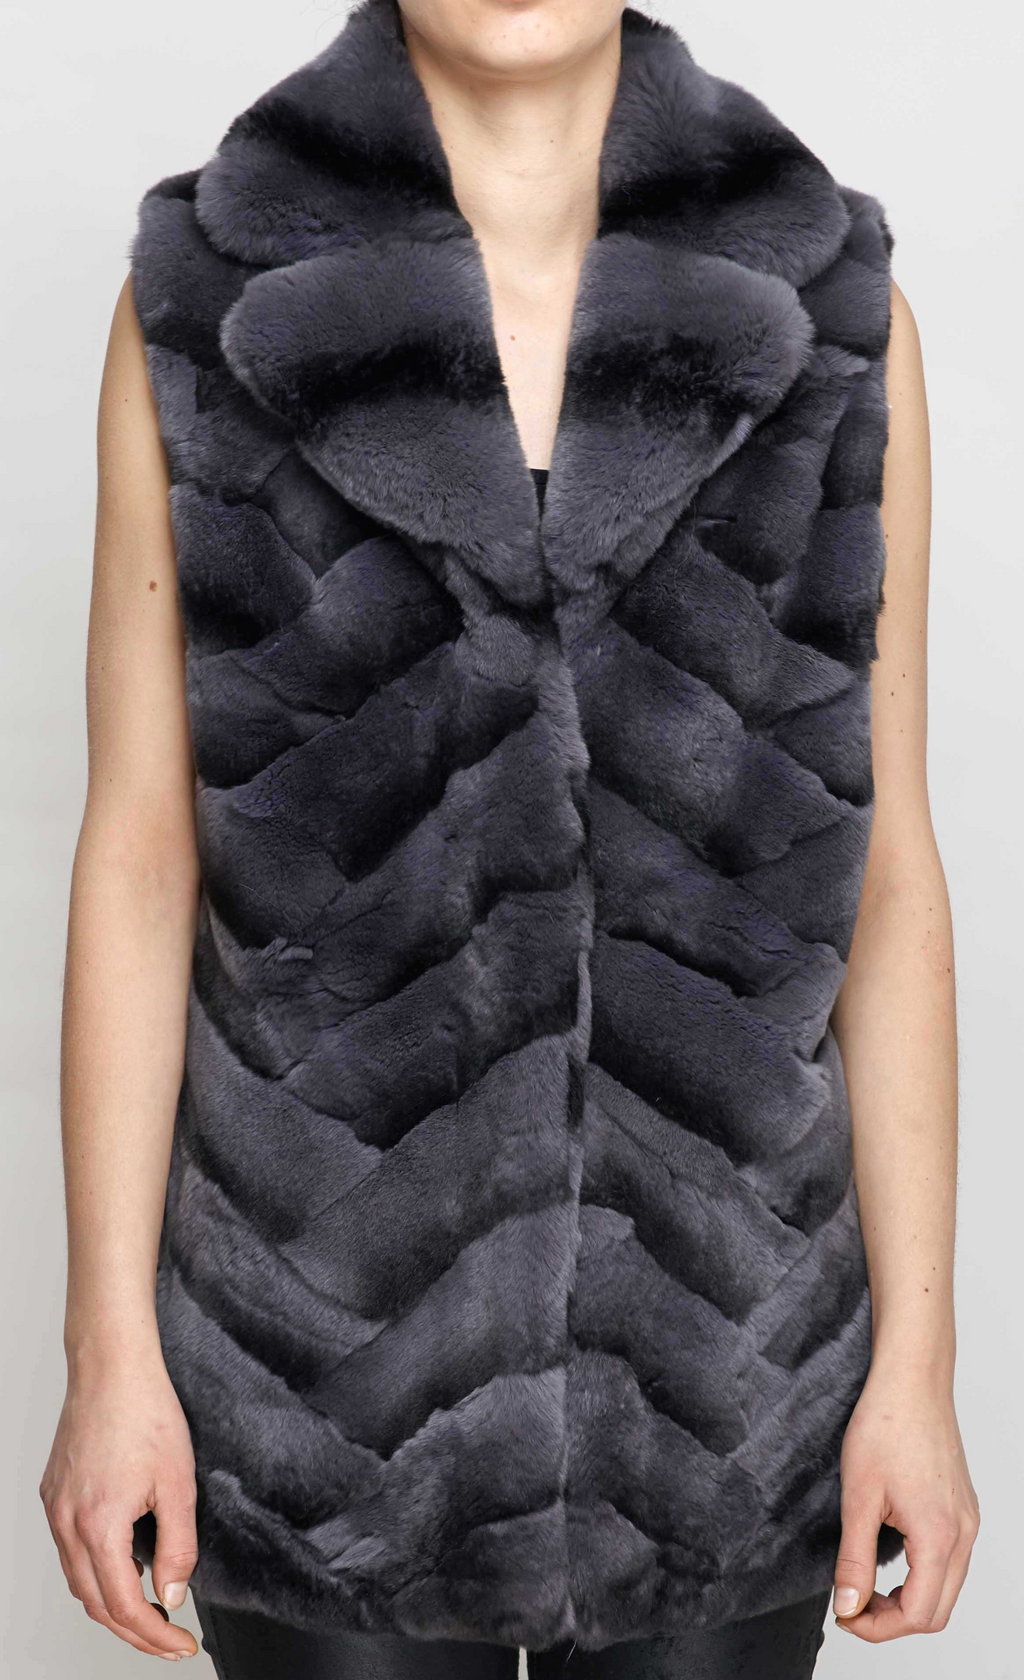 Grey Rex Rabbit Fur Gilet